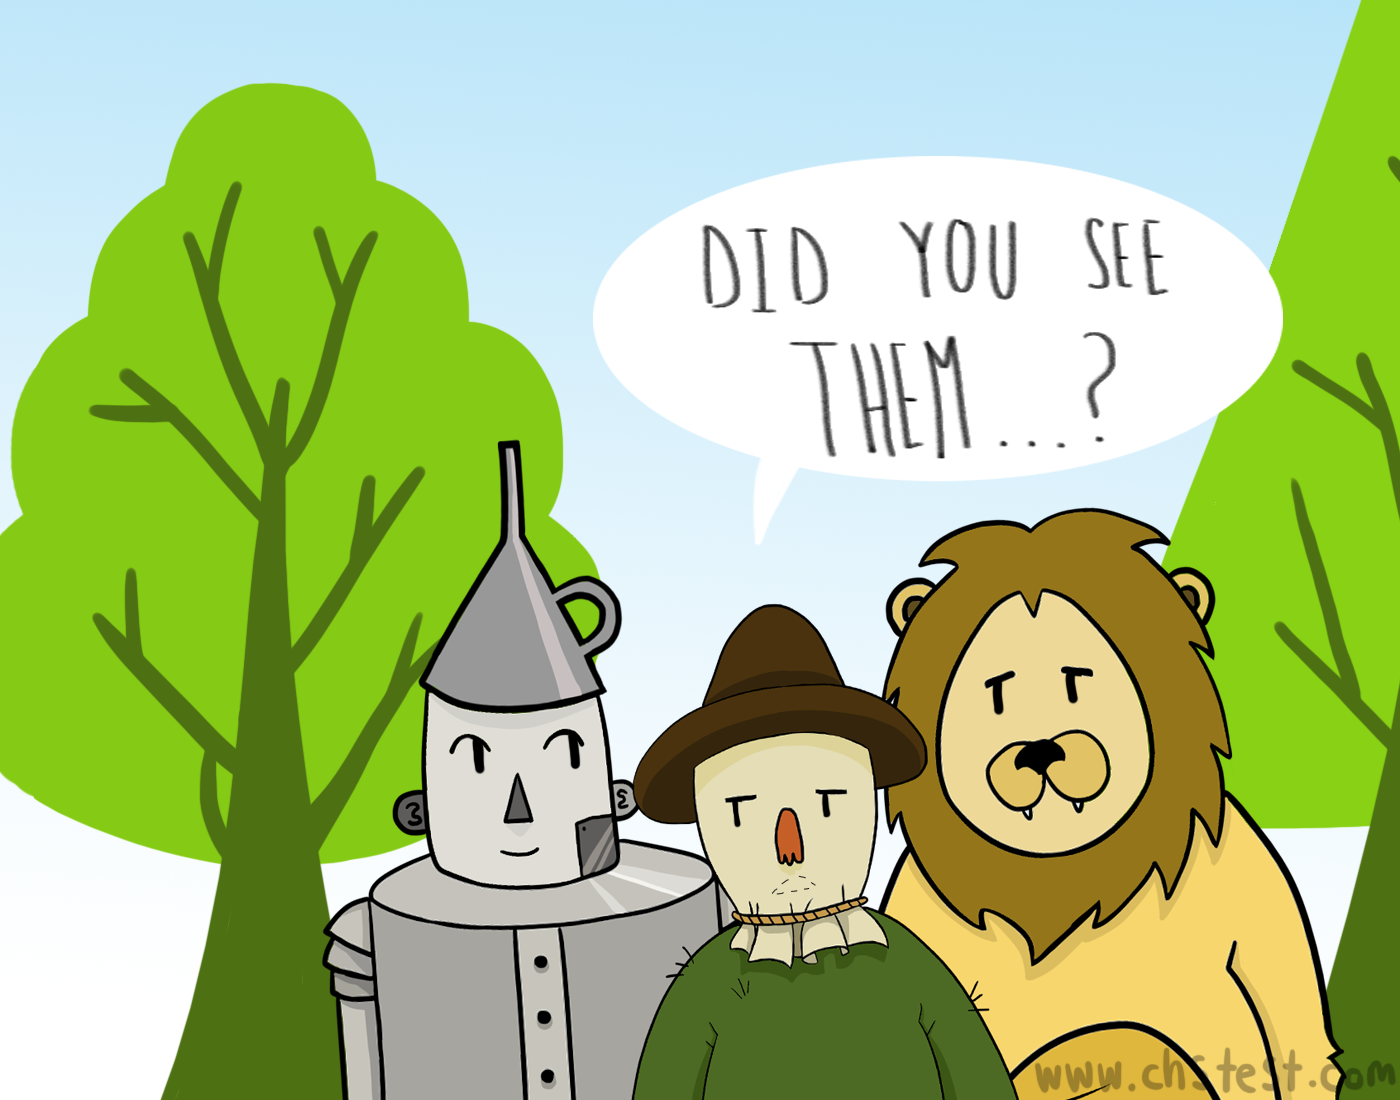 The Coward Lion, the Scarecrow and the Tin Woodman: Did you see them?